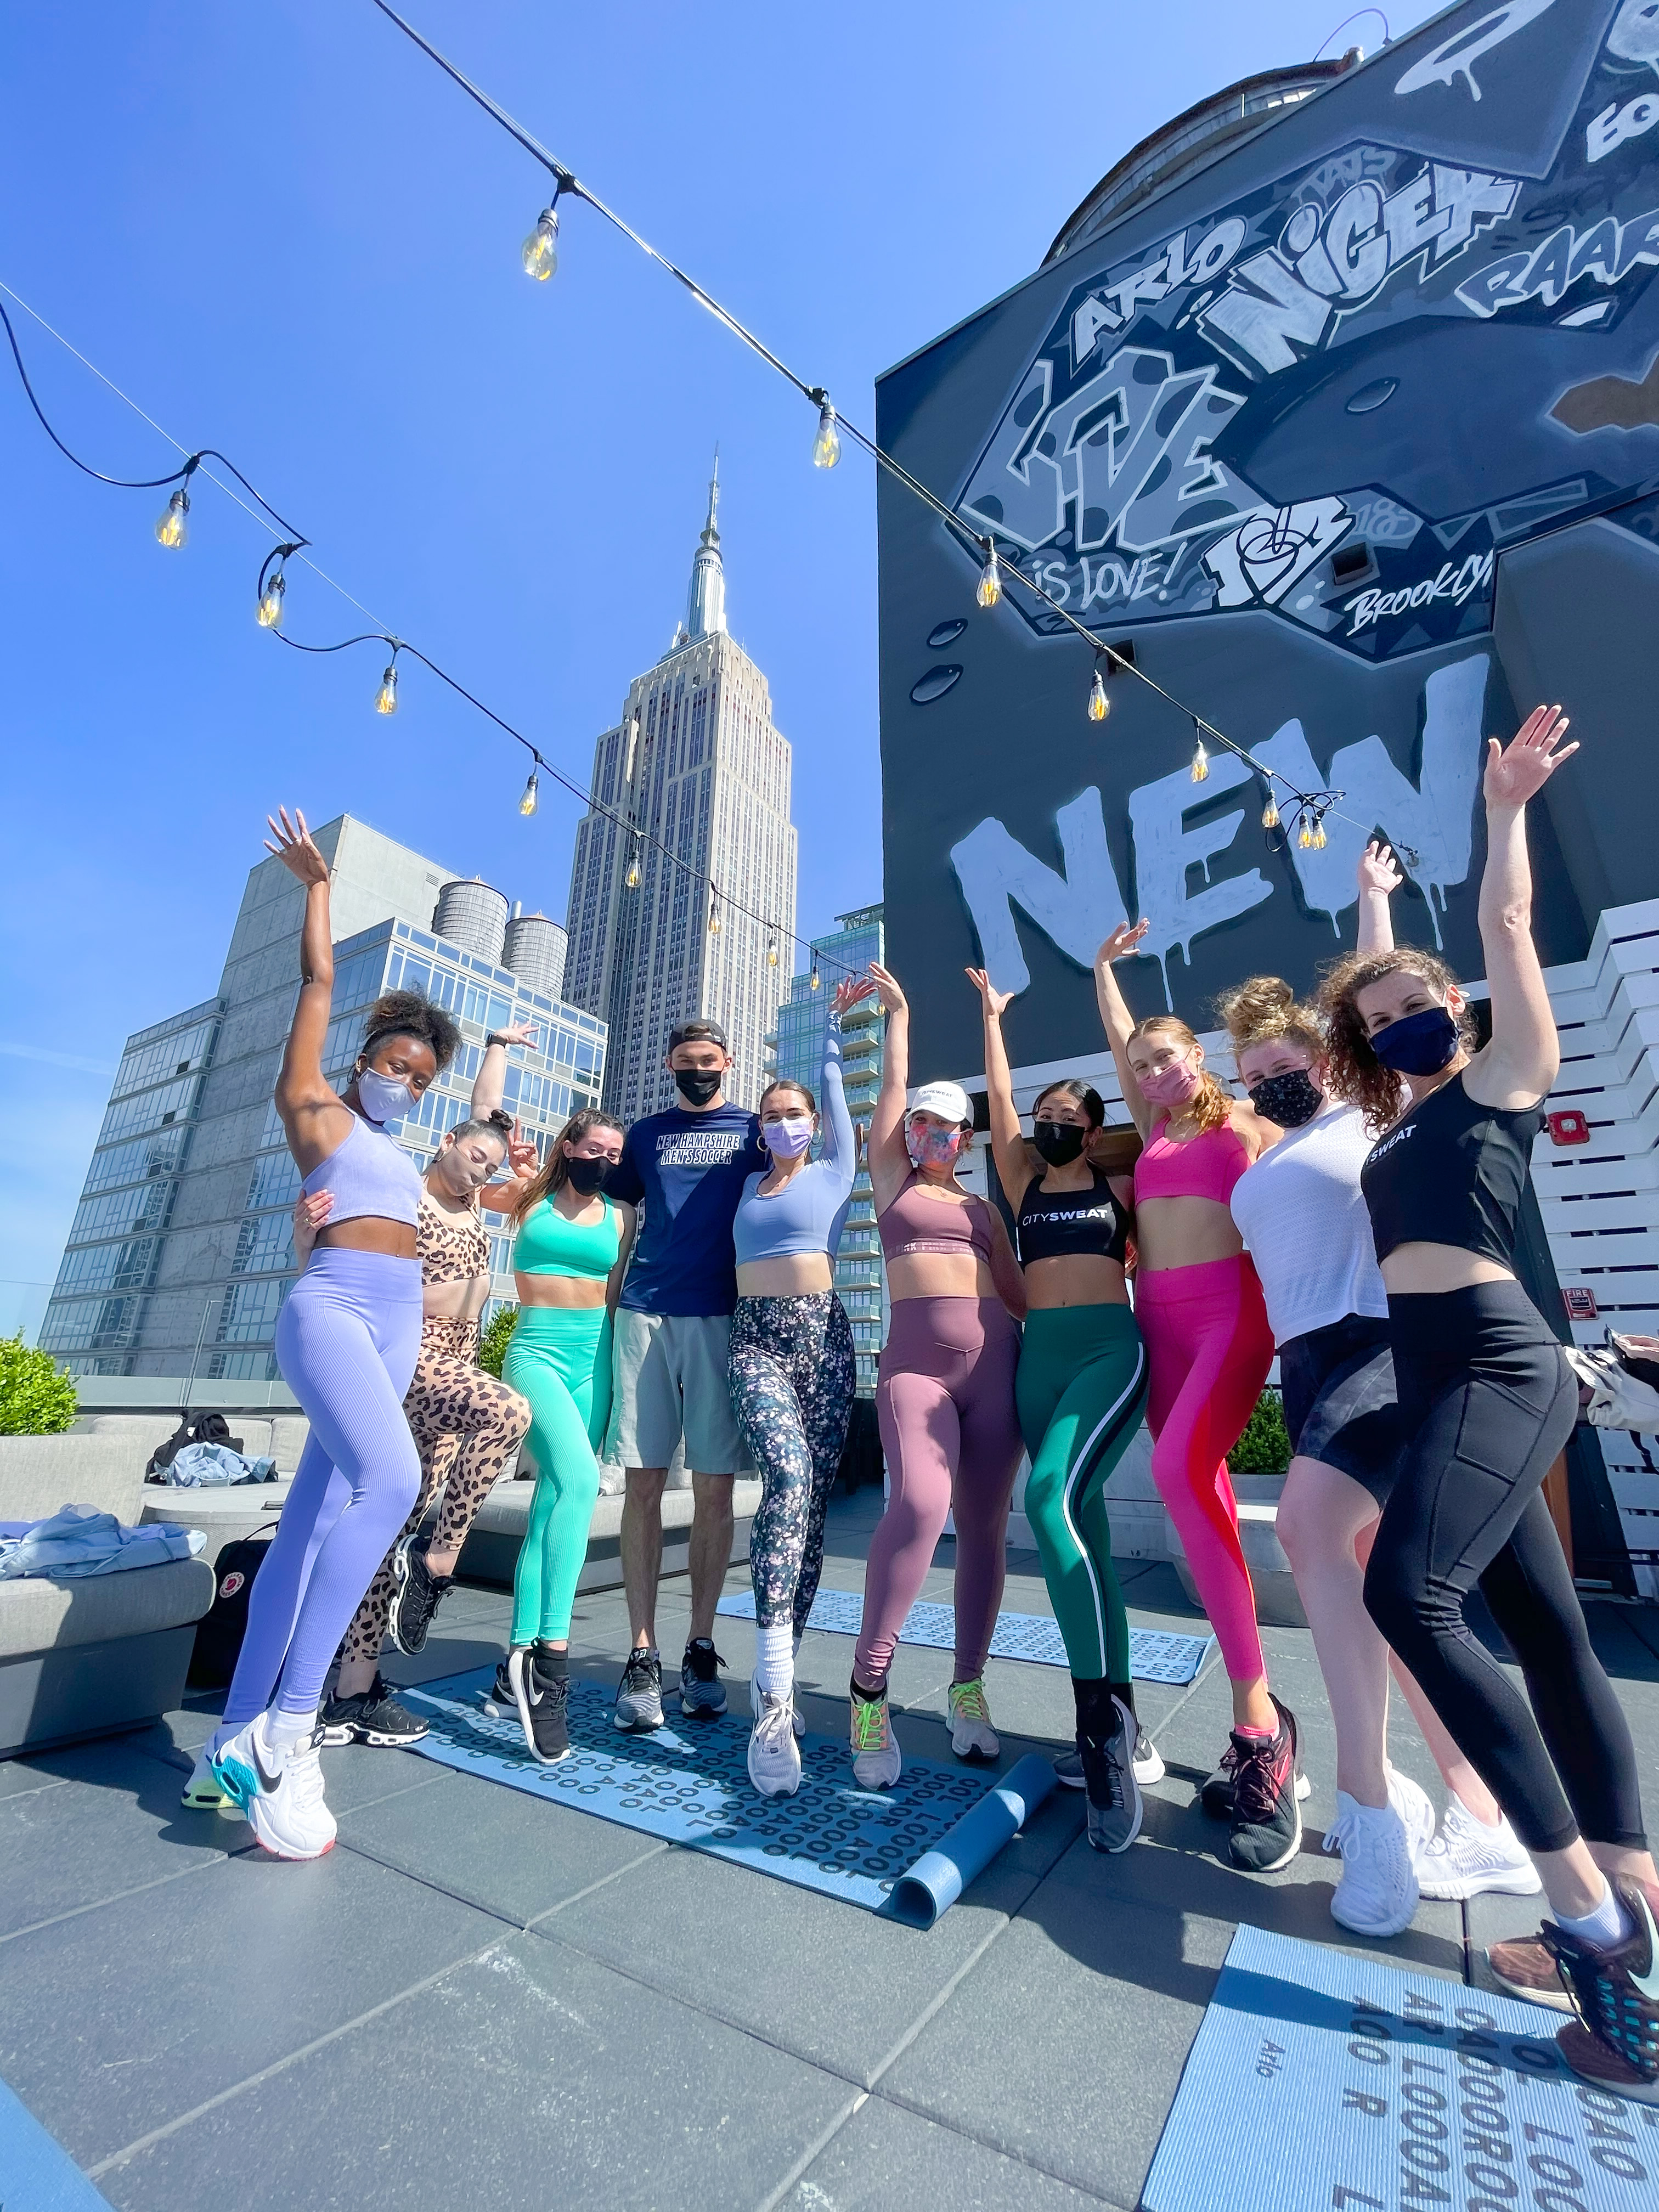 Girls and guys in workout gear posing in front of black mural and empire state building on Arlo NoMad rooftop